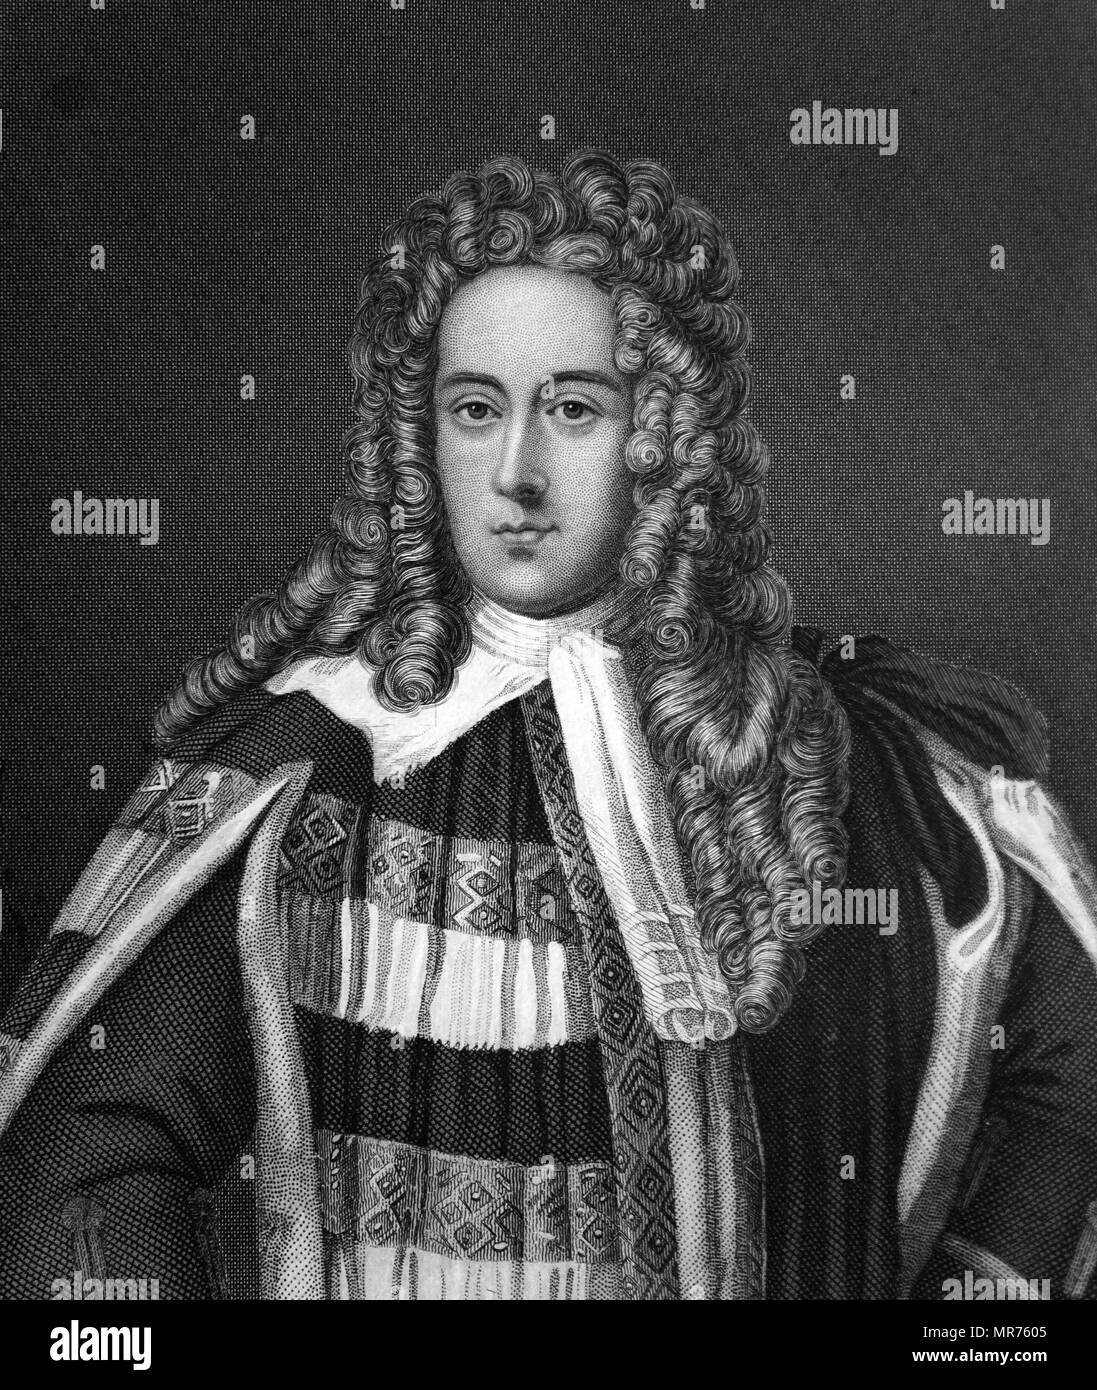 Henry St John, 1st Viscount Bolingbroke (1678–1751), Tory party Jacobite grandee and British statesman - Stock Image